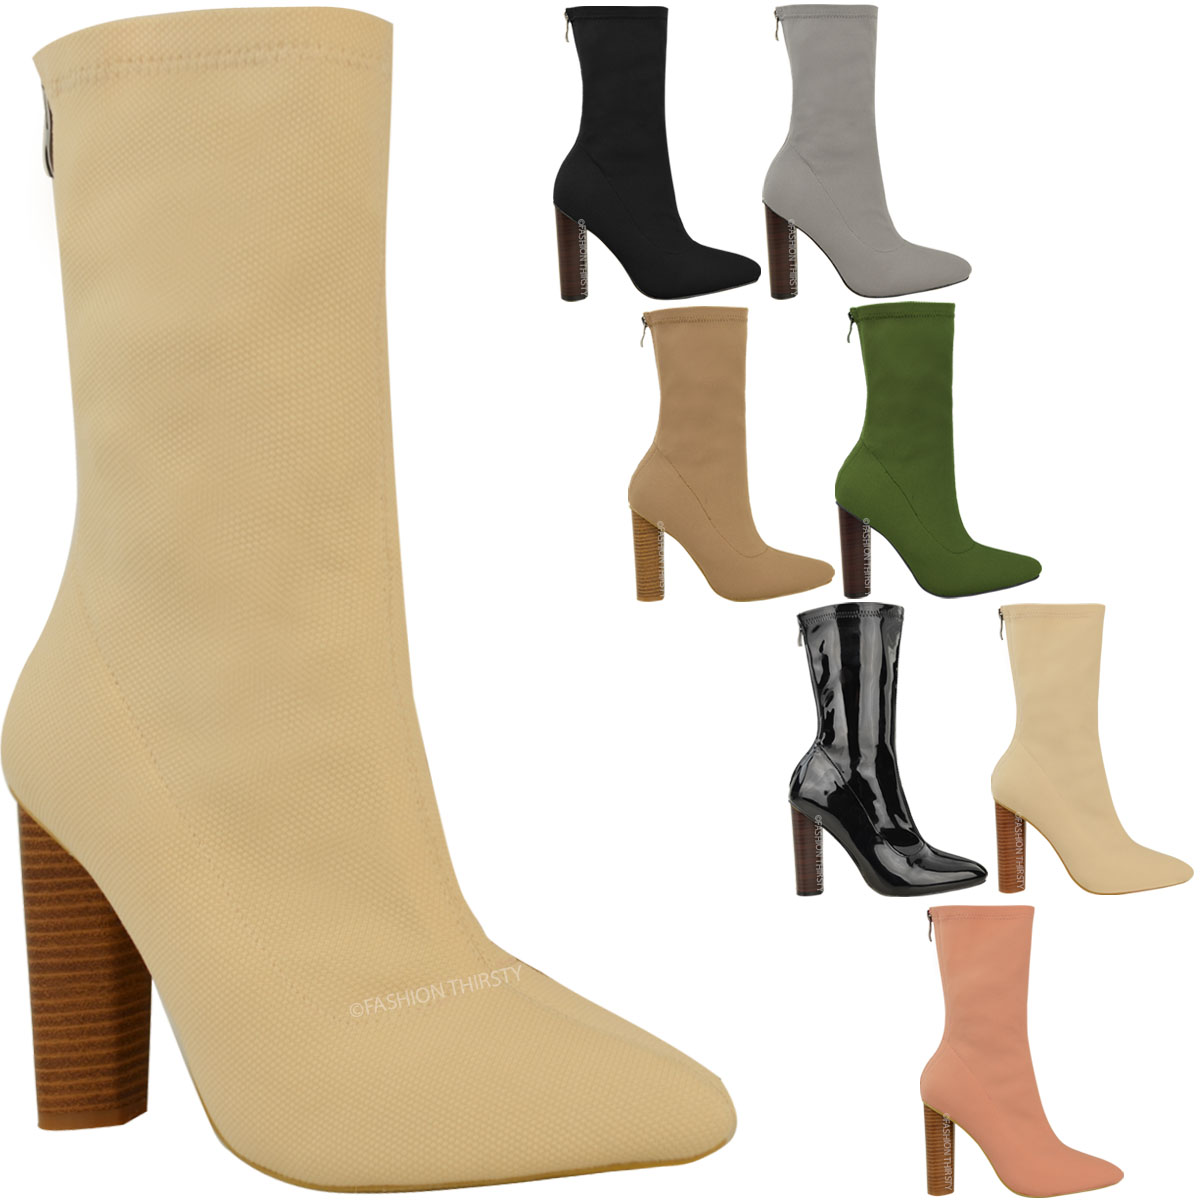 Cool Buy Ankle Boots For Women Boots Square Heels Pointed Toe Botas Women